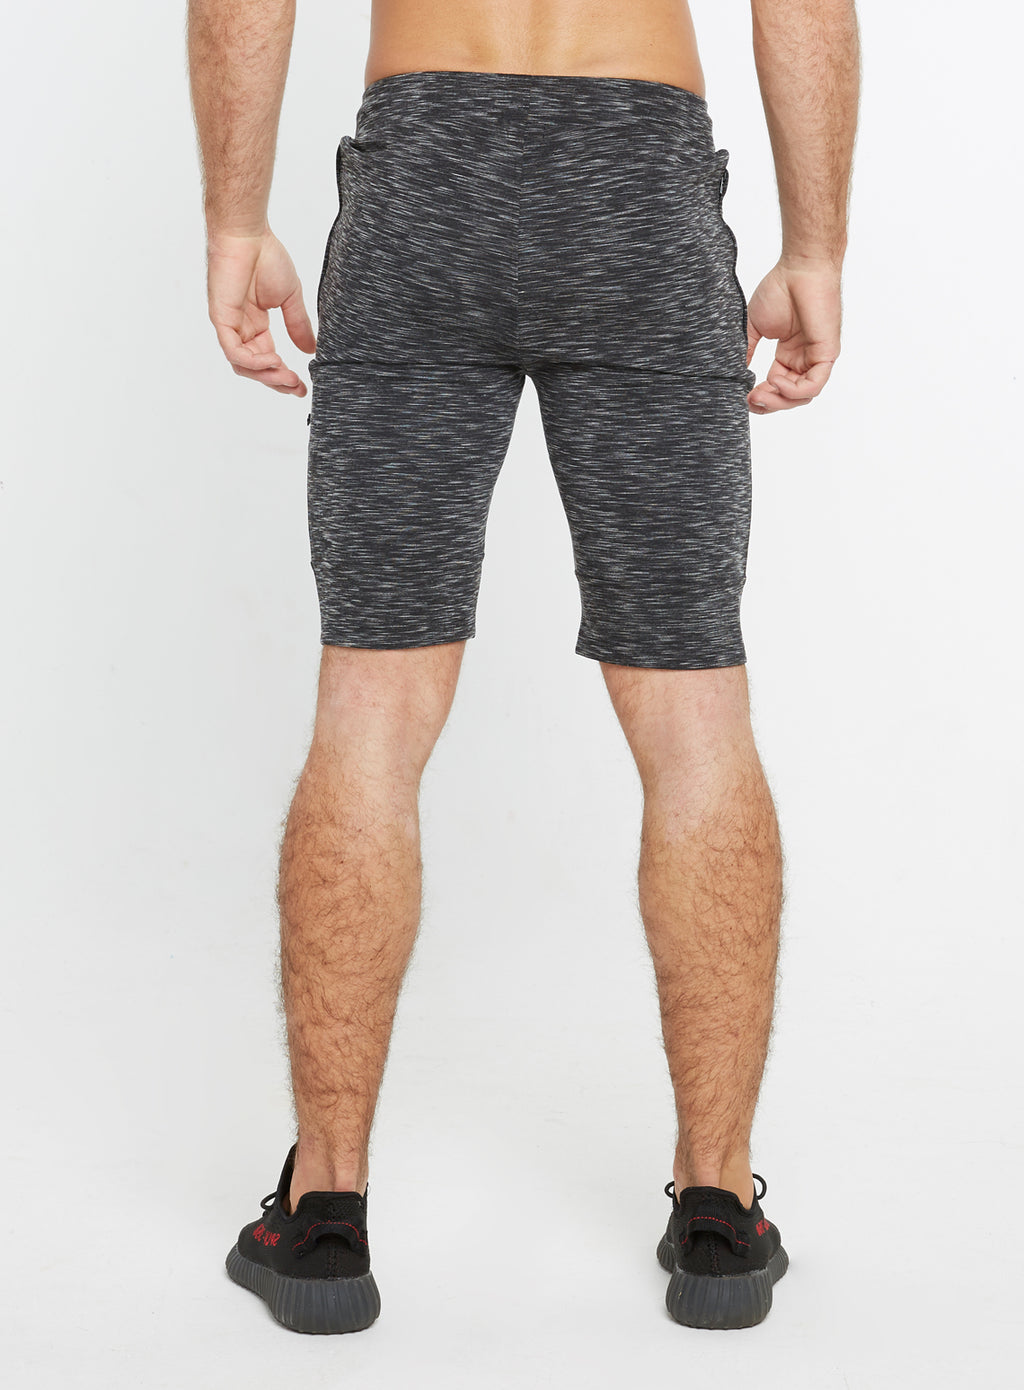 Gym Monkee - Black Striped Shorts REAR